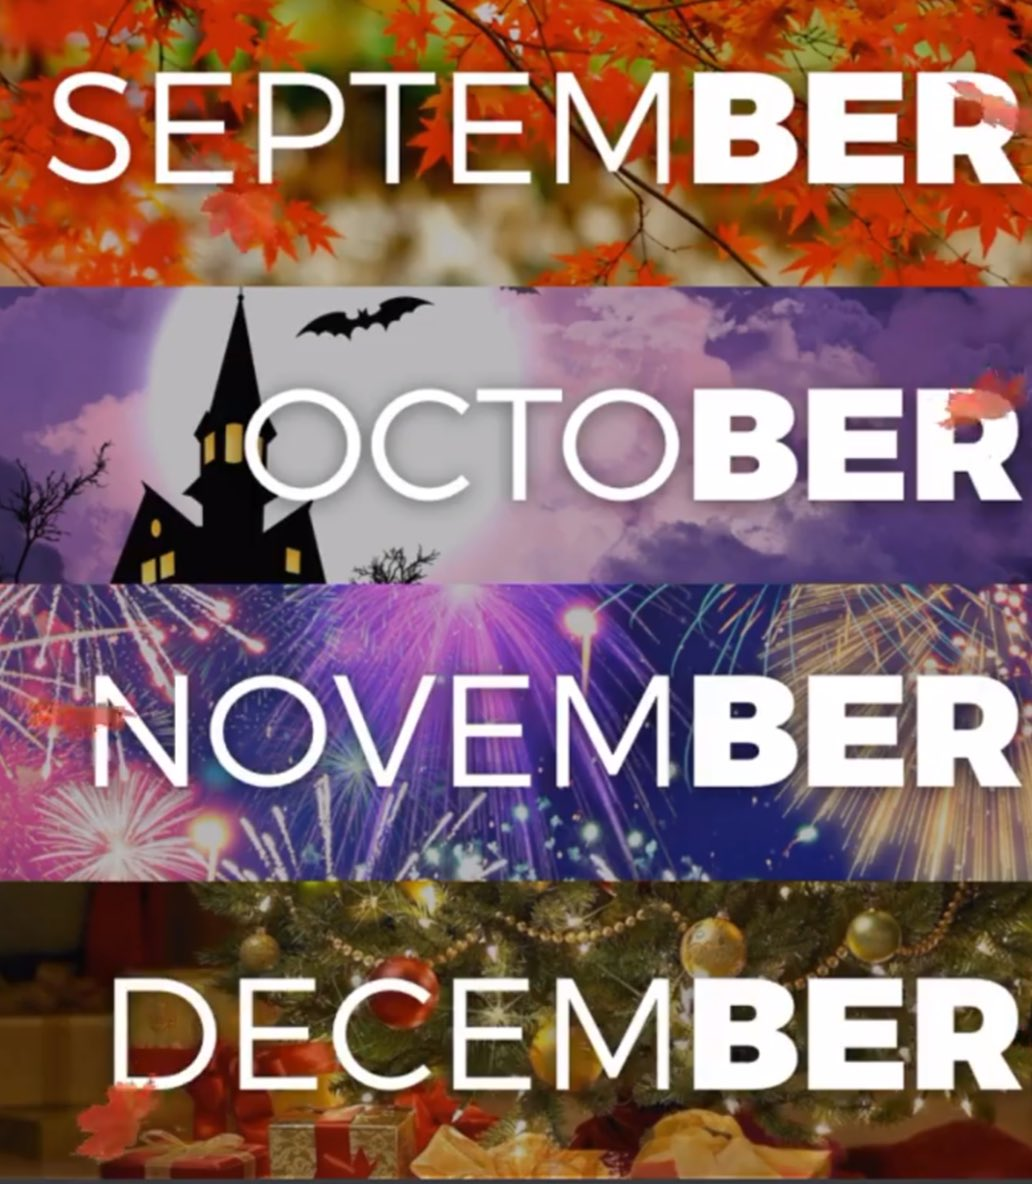 Welcome to the BER months ���������� aka the best months ever! https://t.co/o9YVup5xFl